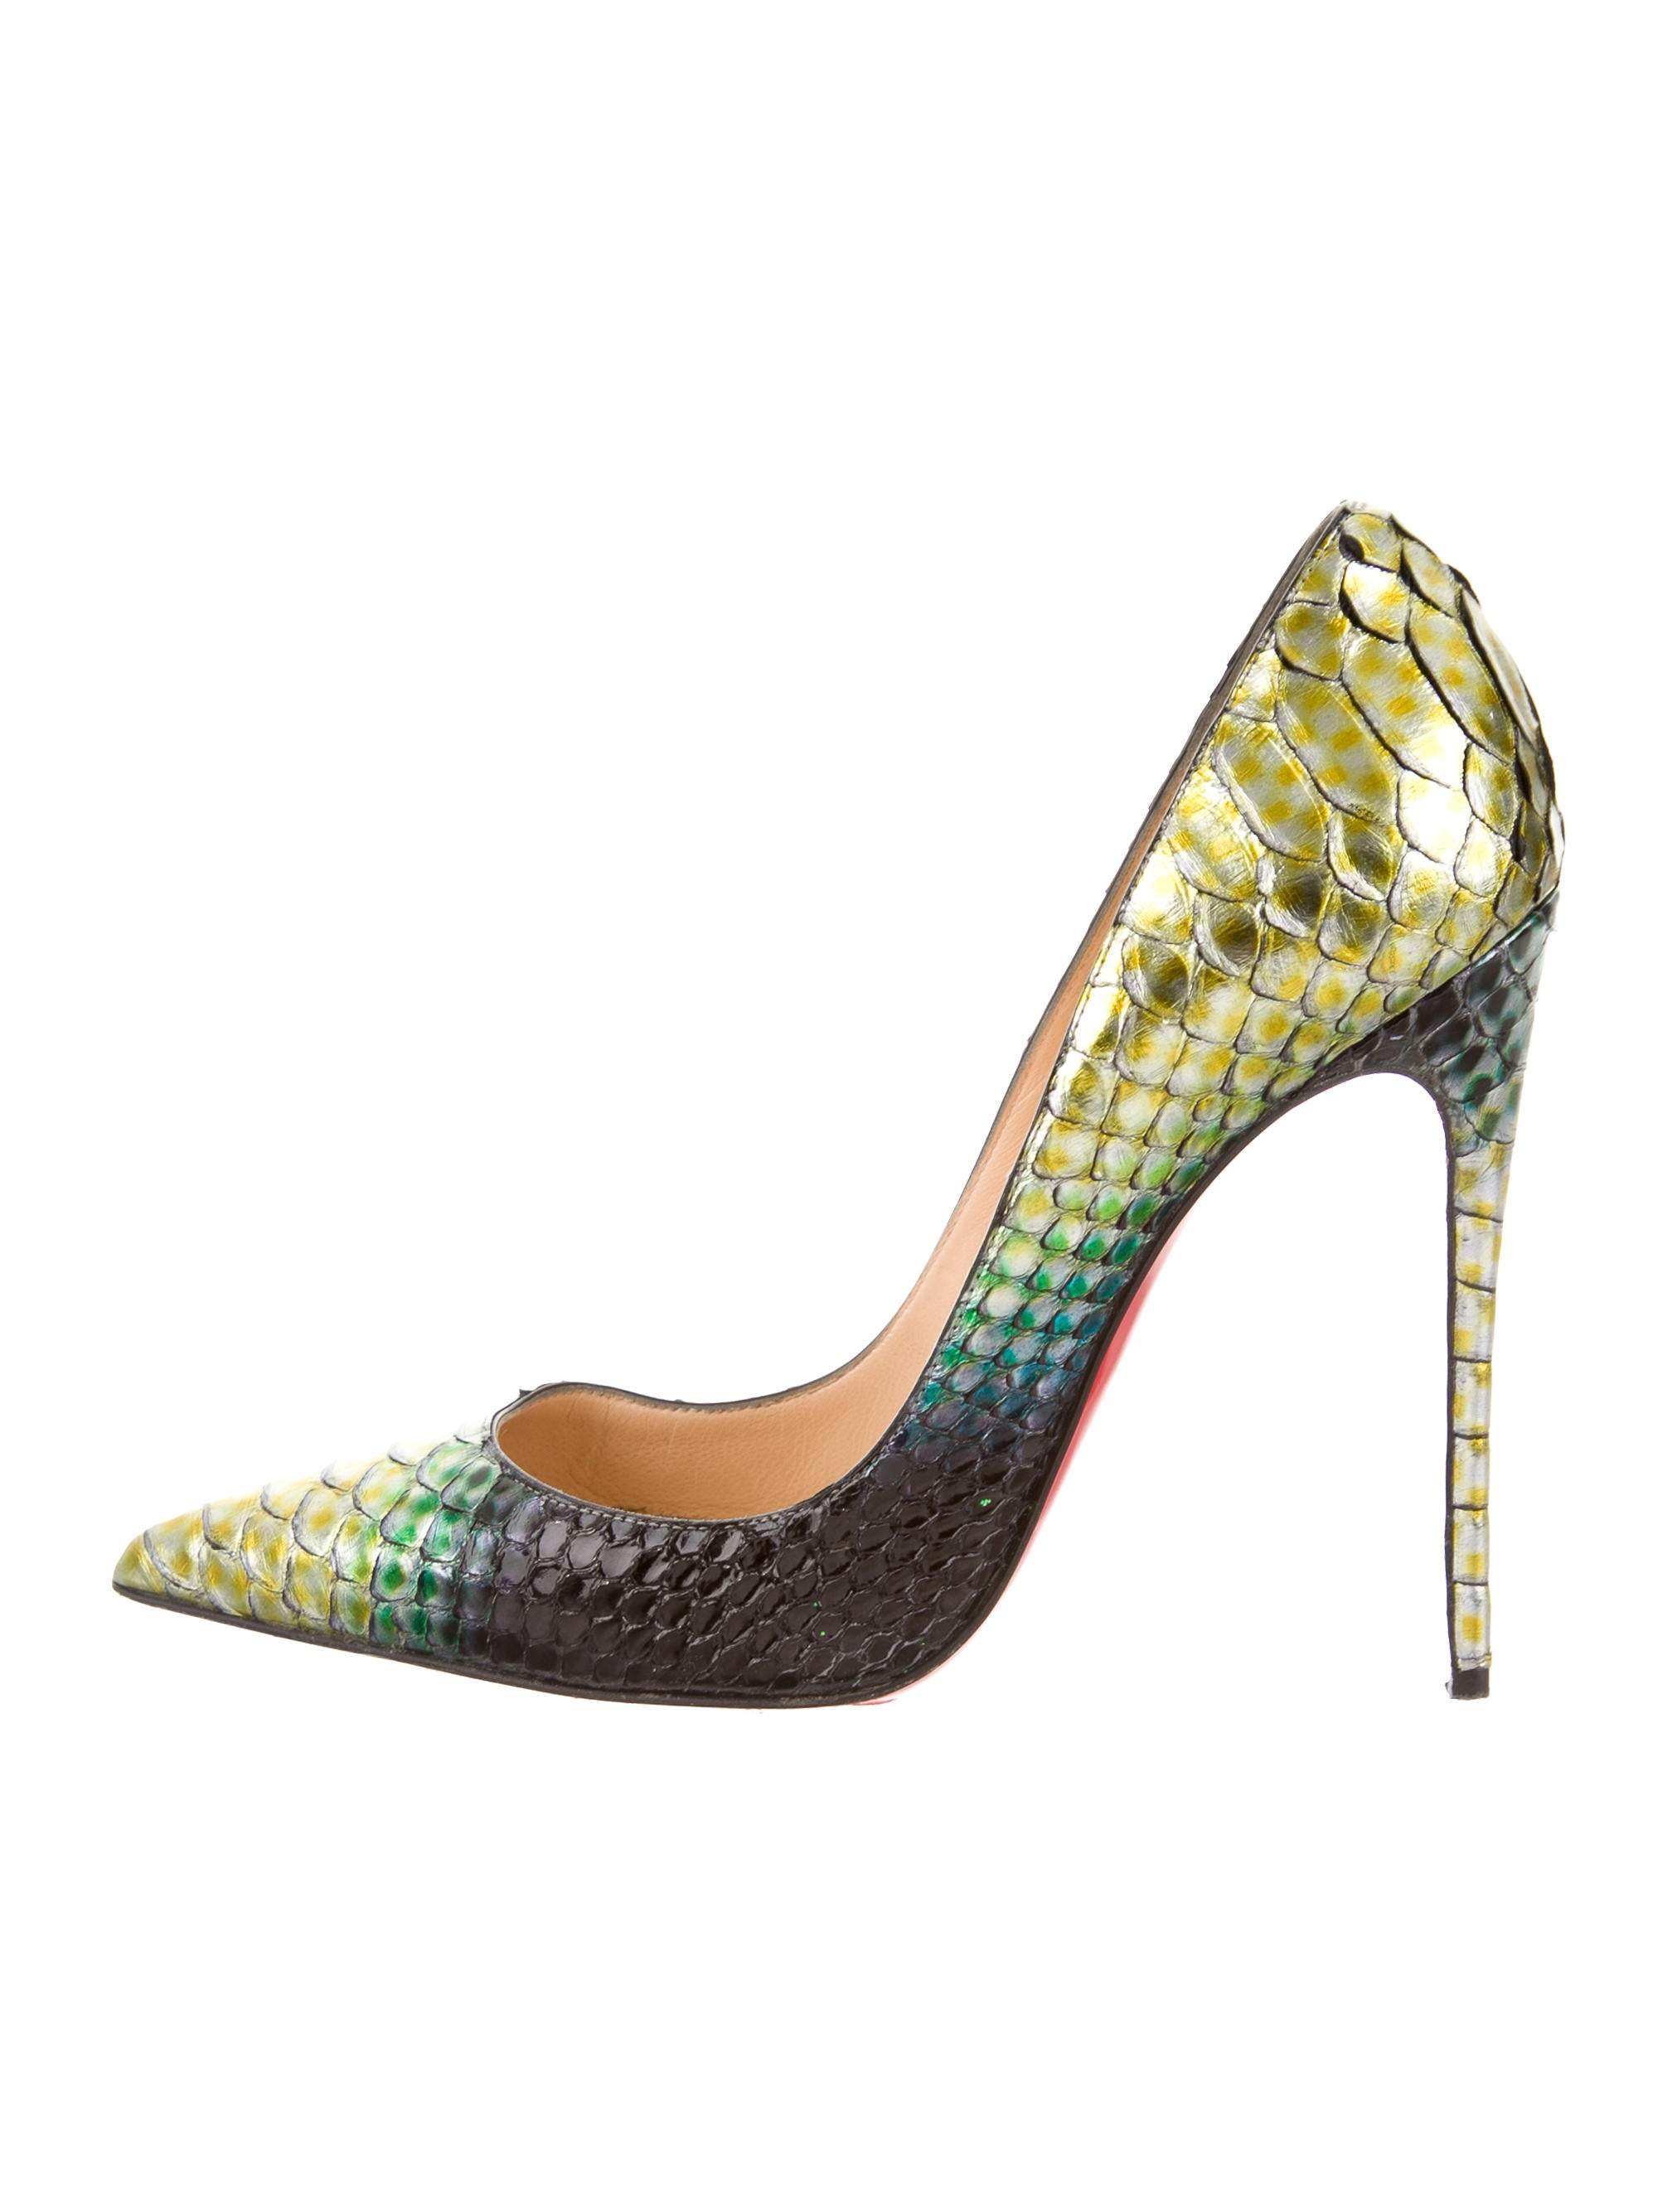 b1a466322256 Christian Louboutin Wedding Shoes Quote Bridal Shoes Uk